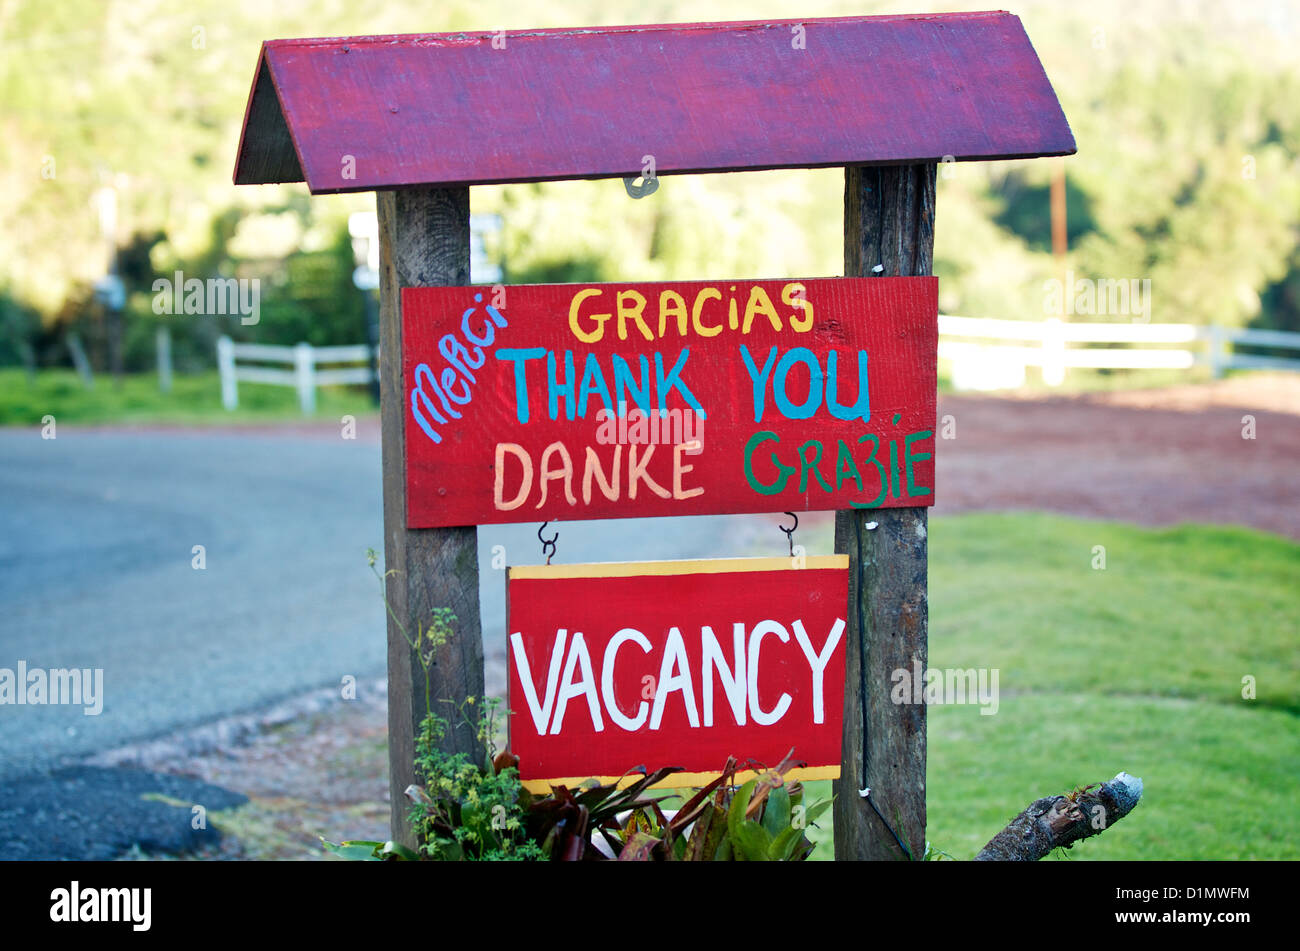 Thank you sign and vacancy sign outside of Poas Lodge and Restaurant, Alajuela, Costa Rica Stock Photo